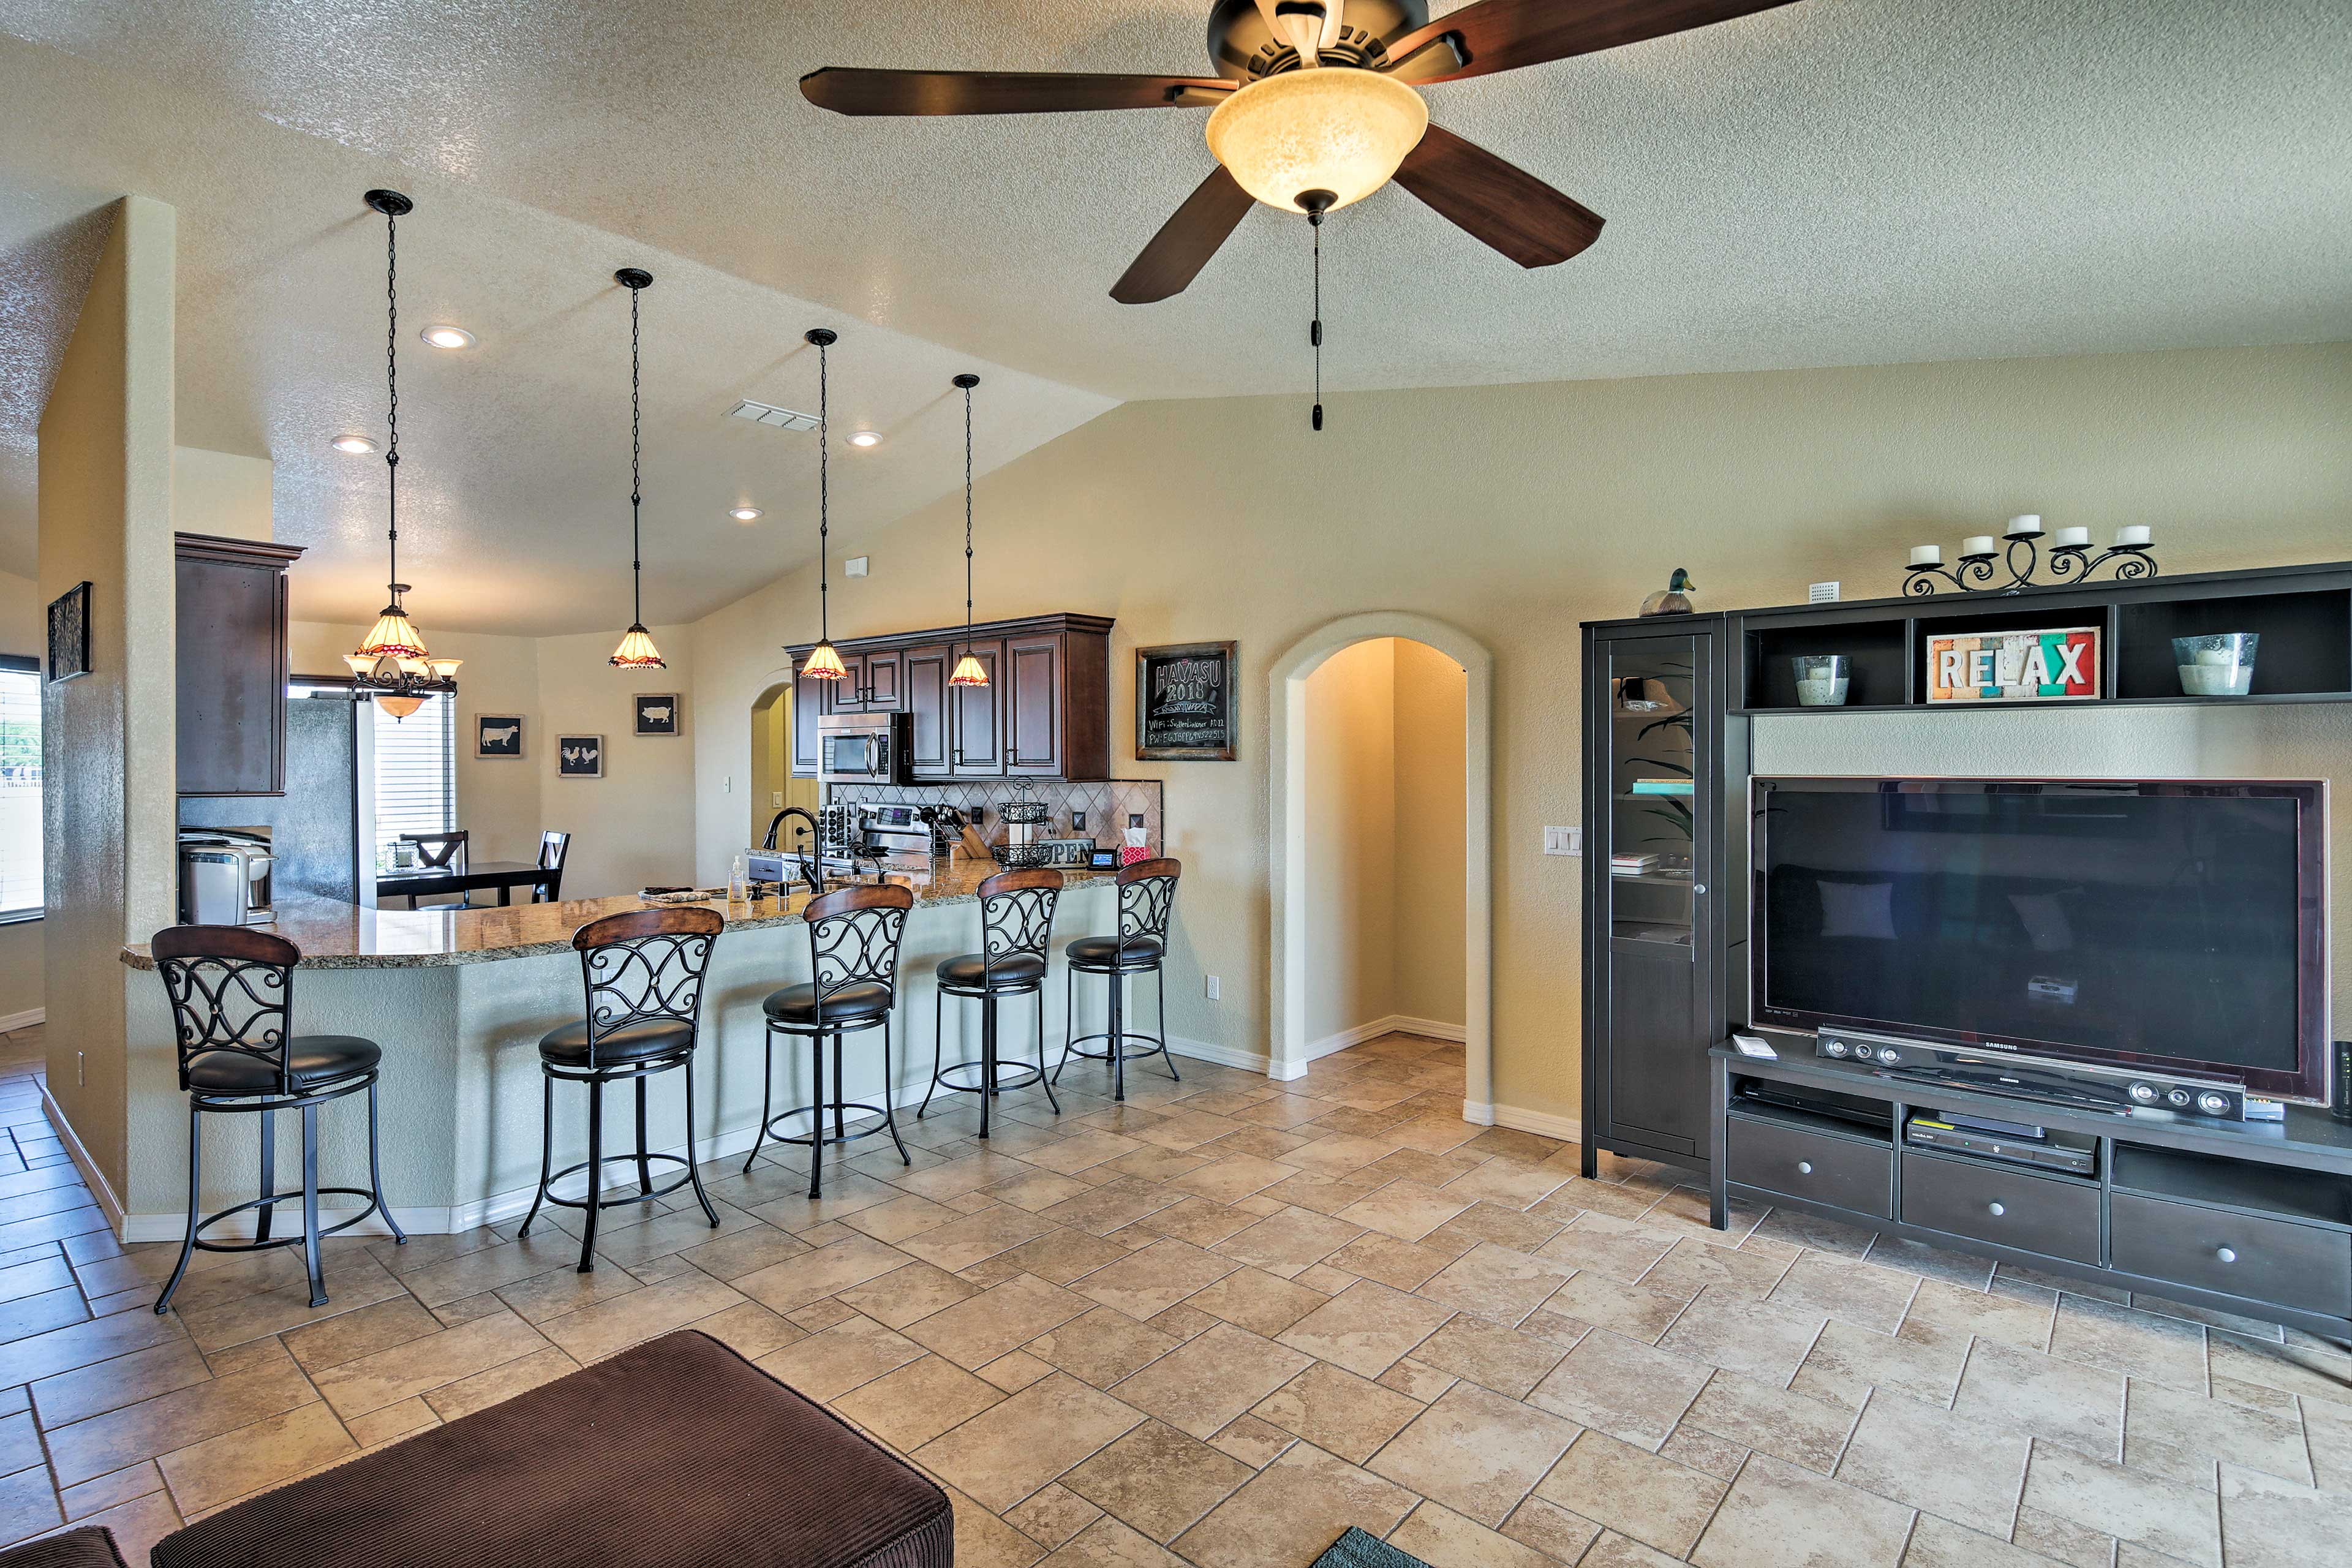 The open layout brings the living, dining, and kitchen areas together.